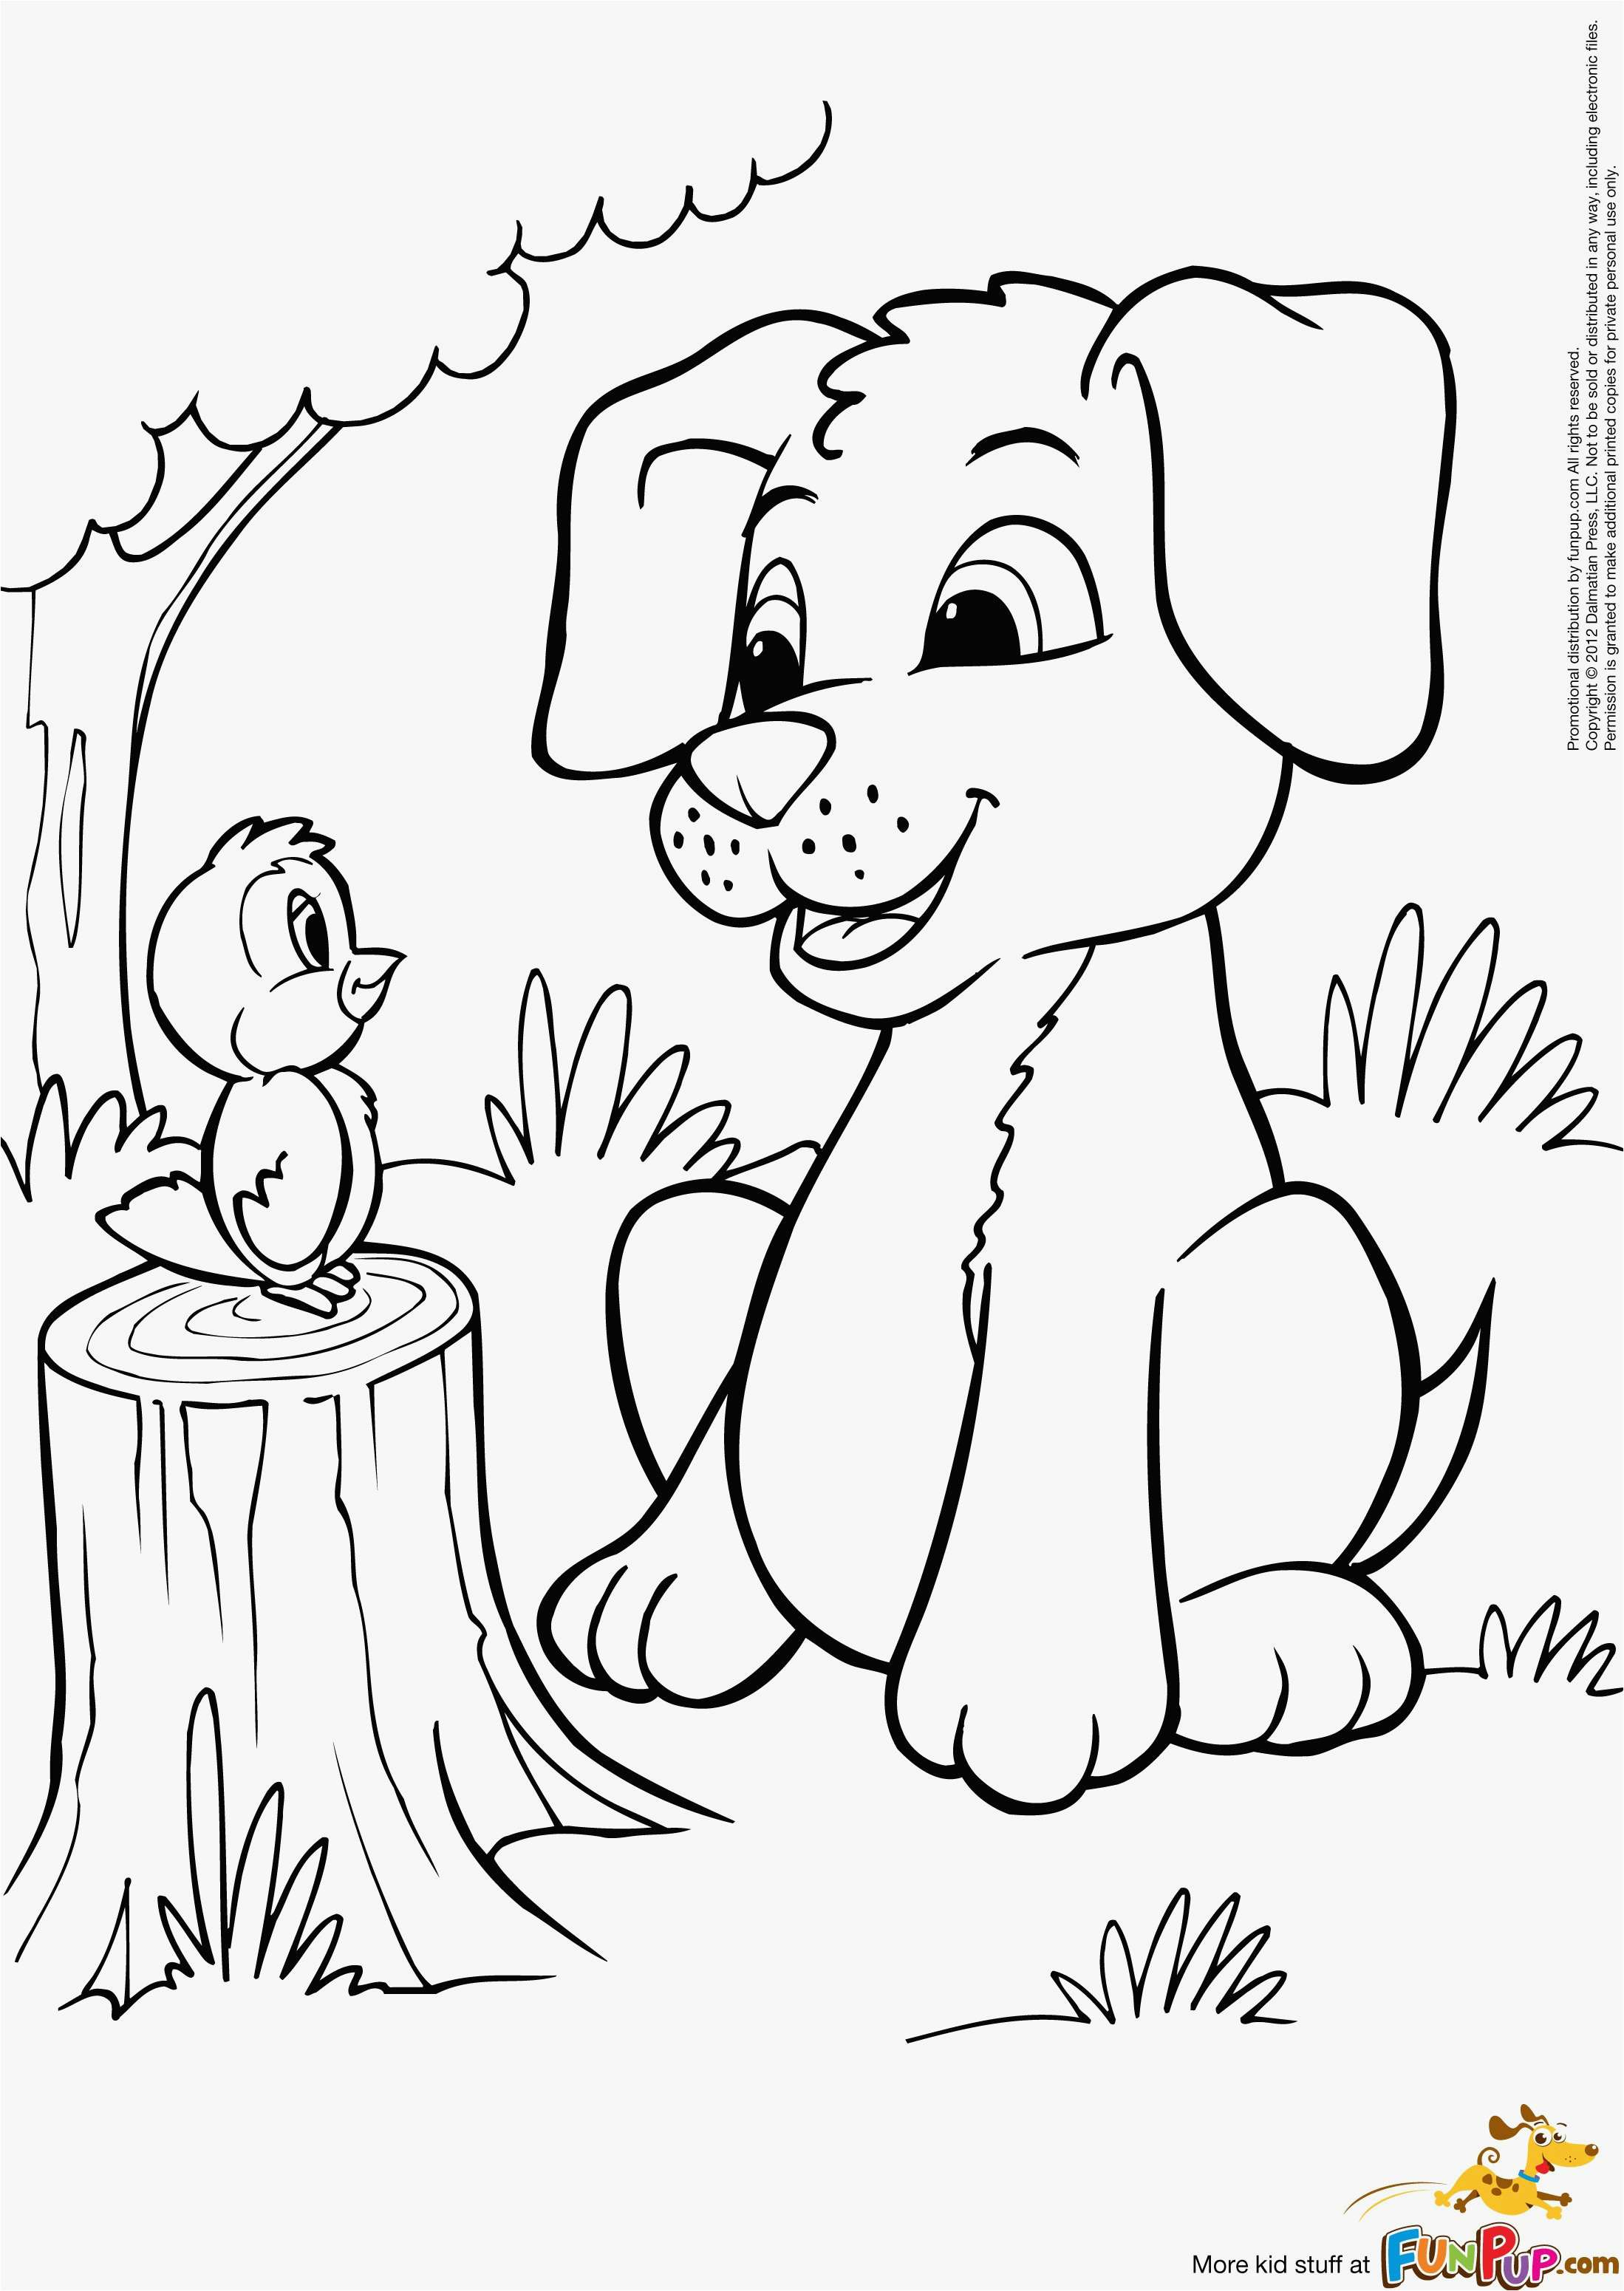 Kittens Coloring Pages  Gallery 12e - Free For kids